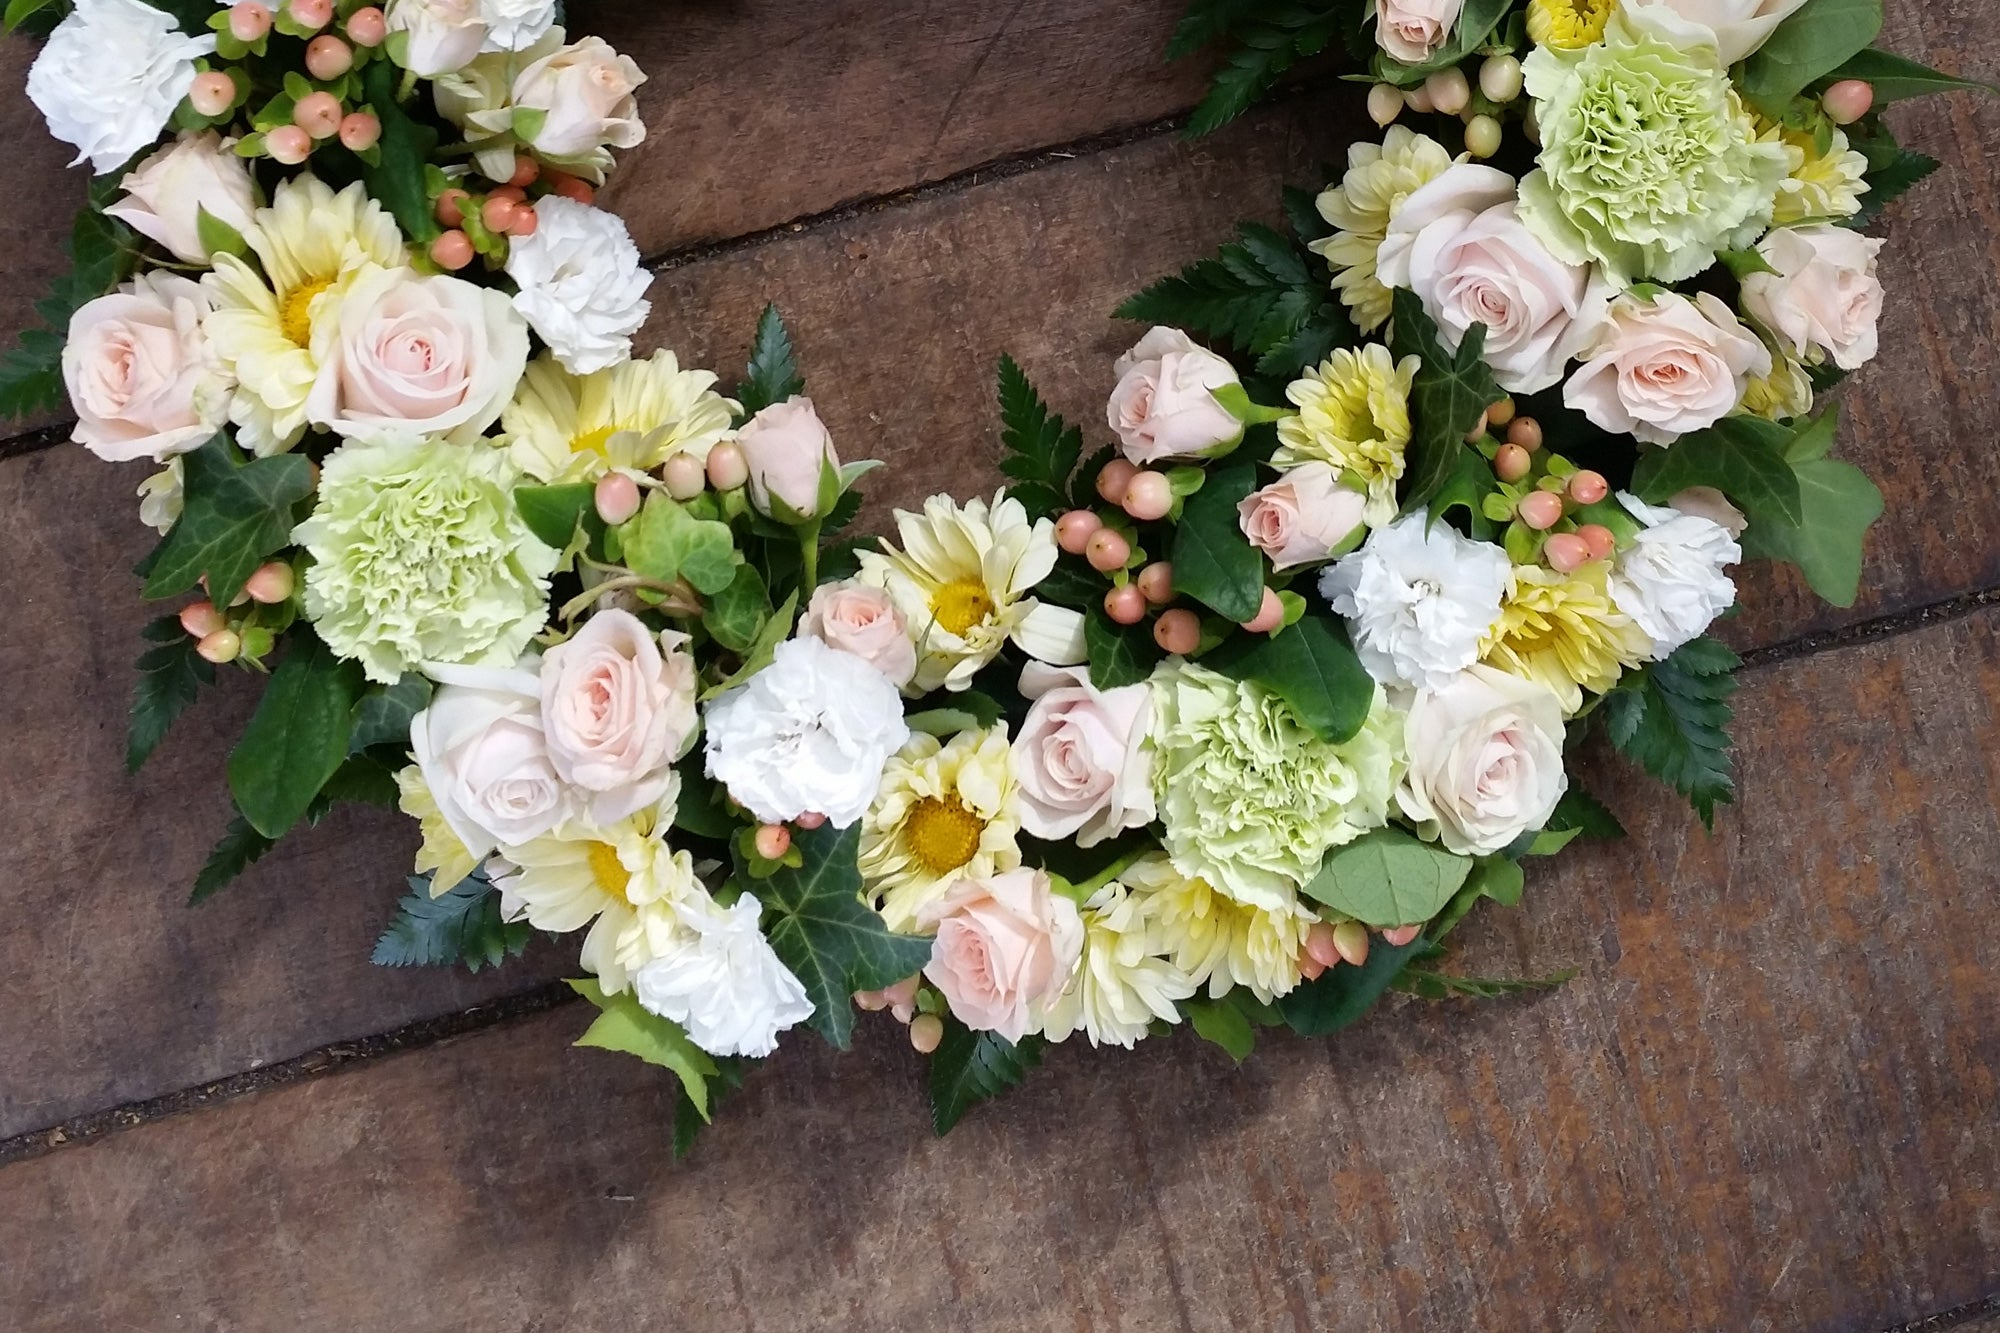 Funeral flowers for sympathy wellington juliette florist sympathy flowers wellington funeral izmirmasajfo